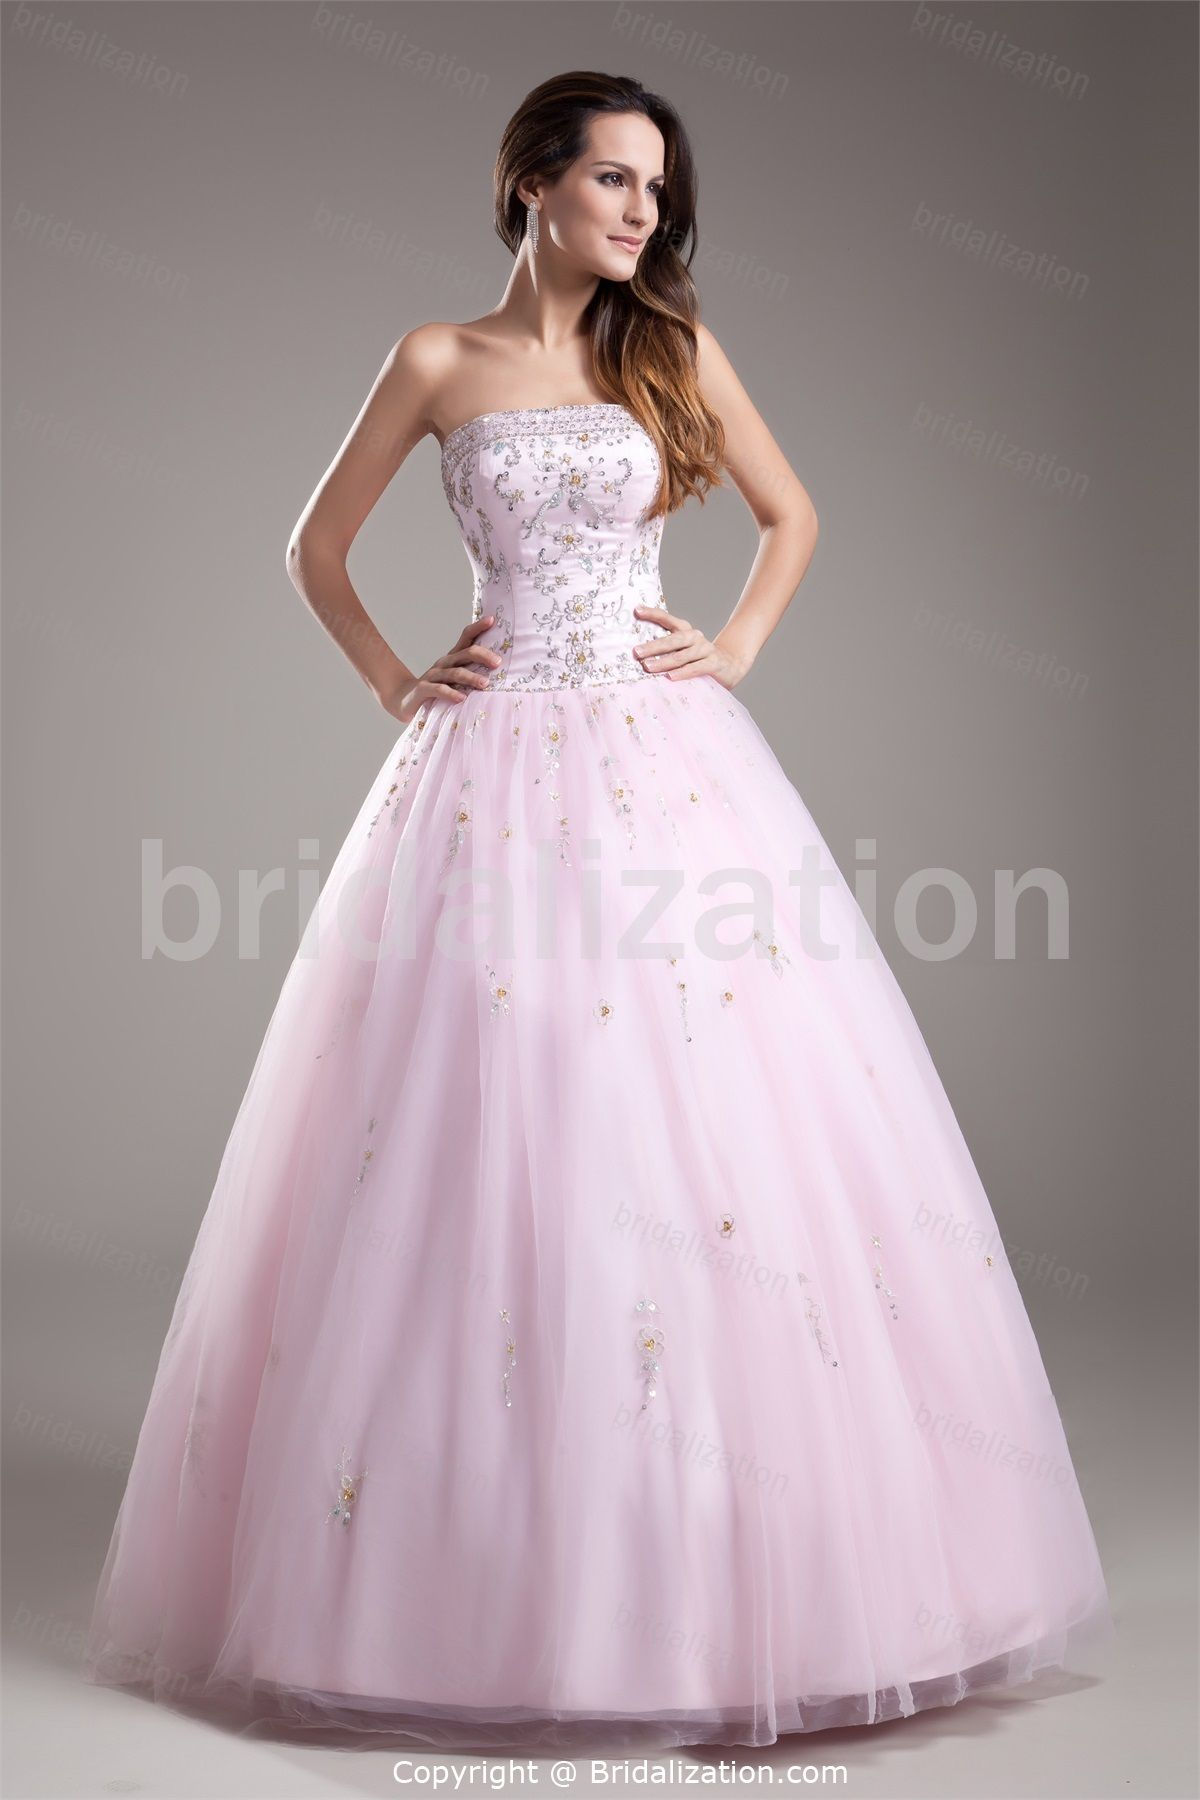 Light Pink Ball Gown Floor-Length Sleeveless Prom Dress -Special ...